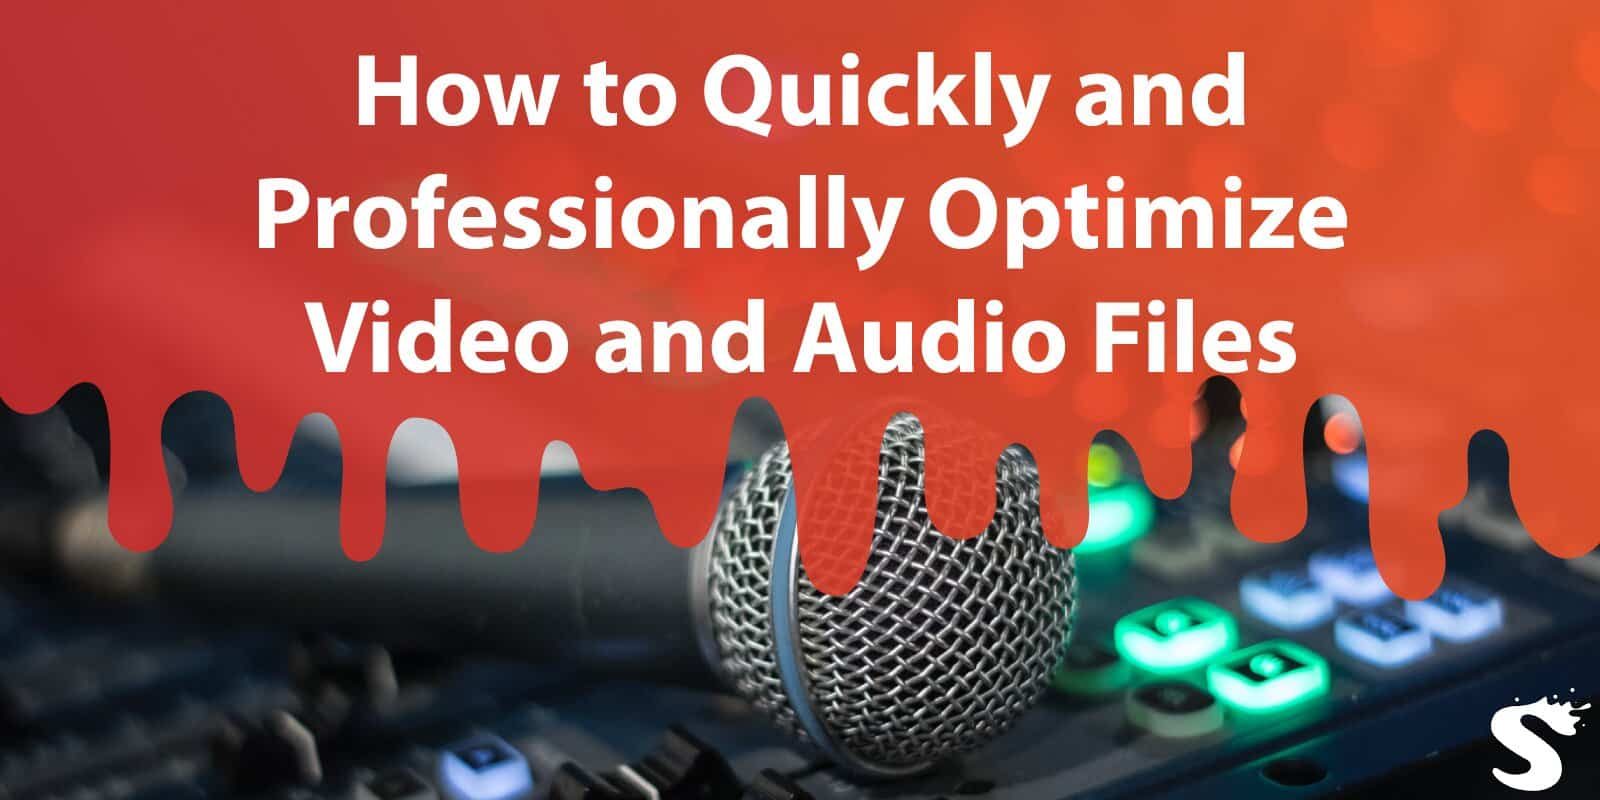 How to Quickly and Professionally Optimize Video & Audio Files